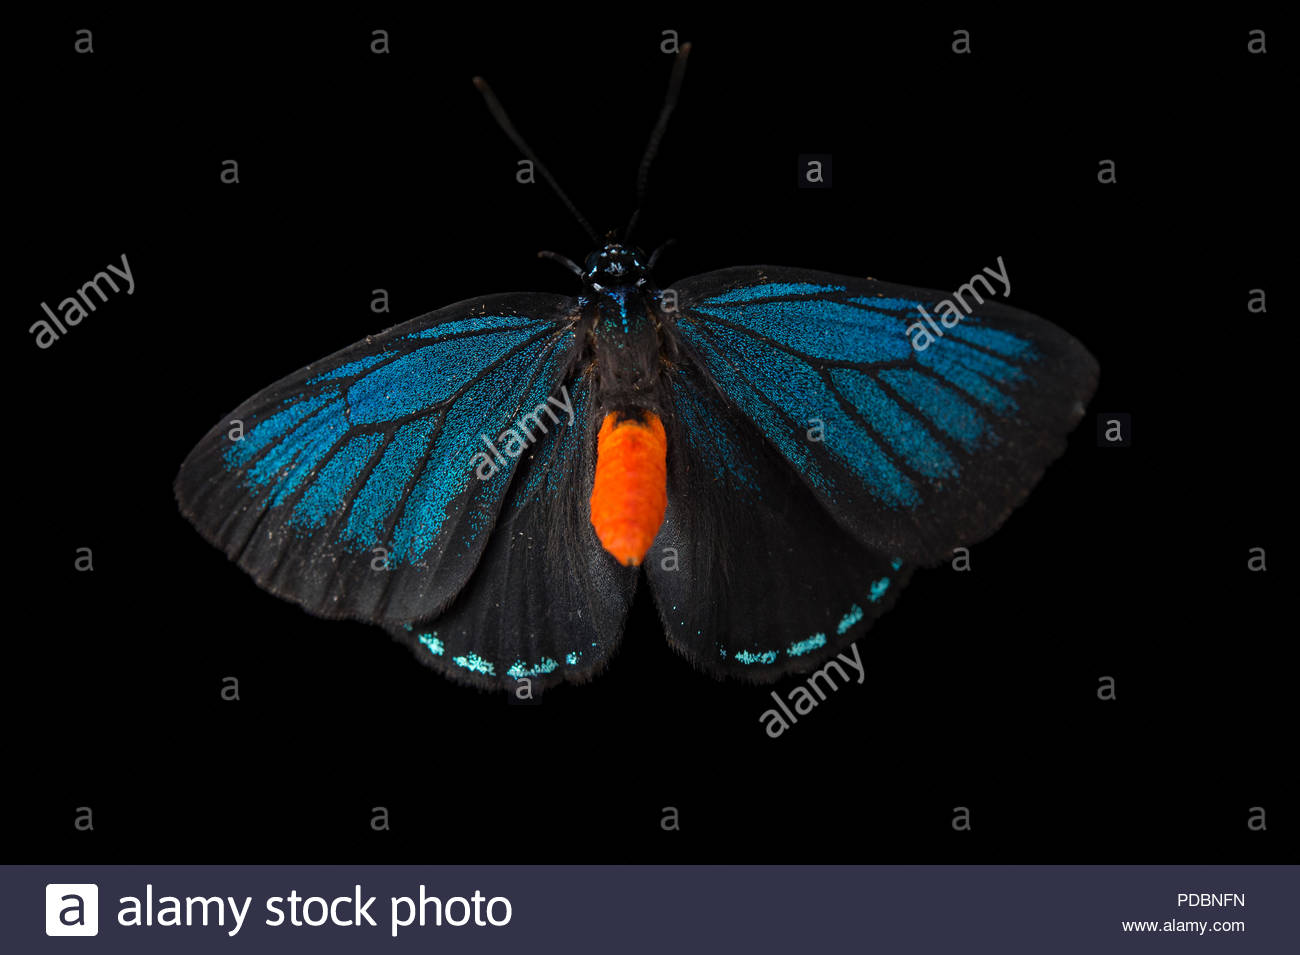 Atala butterfly, Eumaeus atala, at the McGuire Center of the Florida Museum of Natural History. Stock Photo